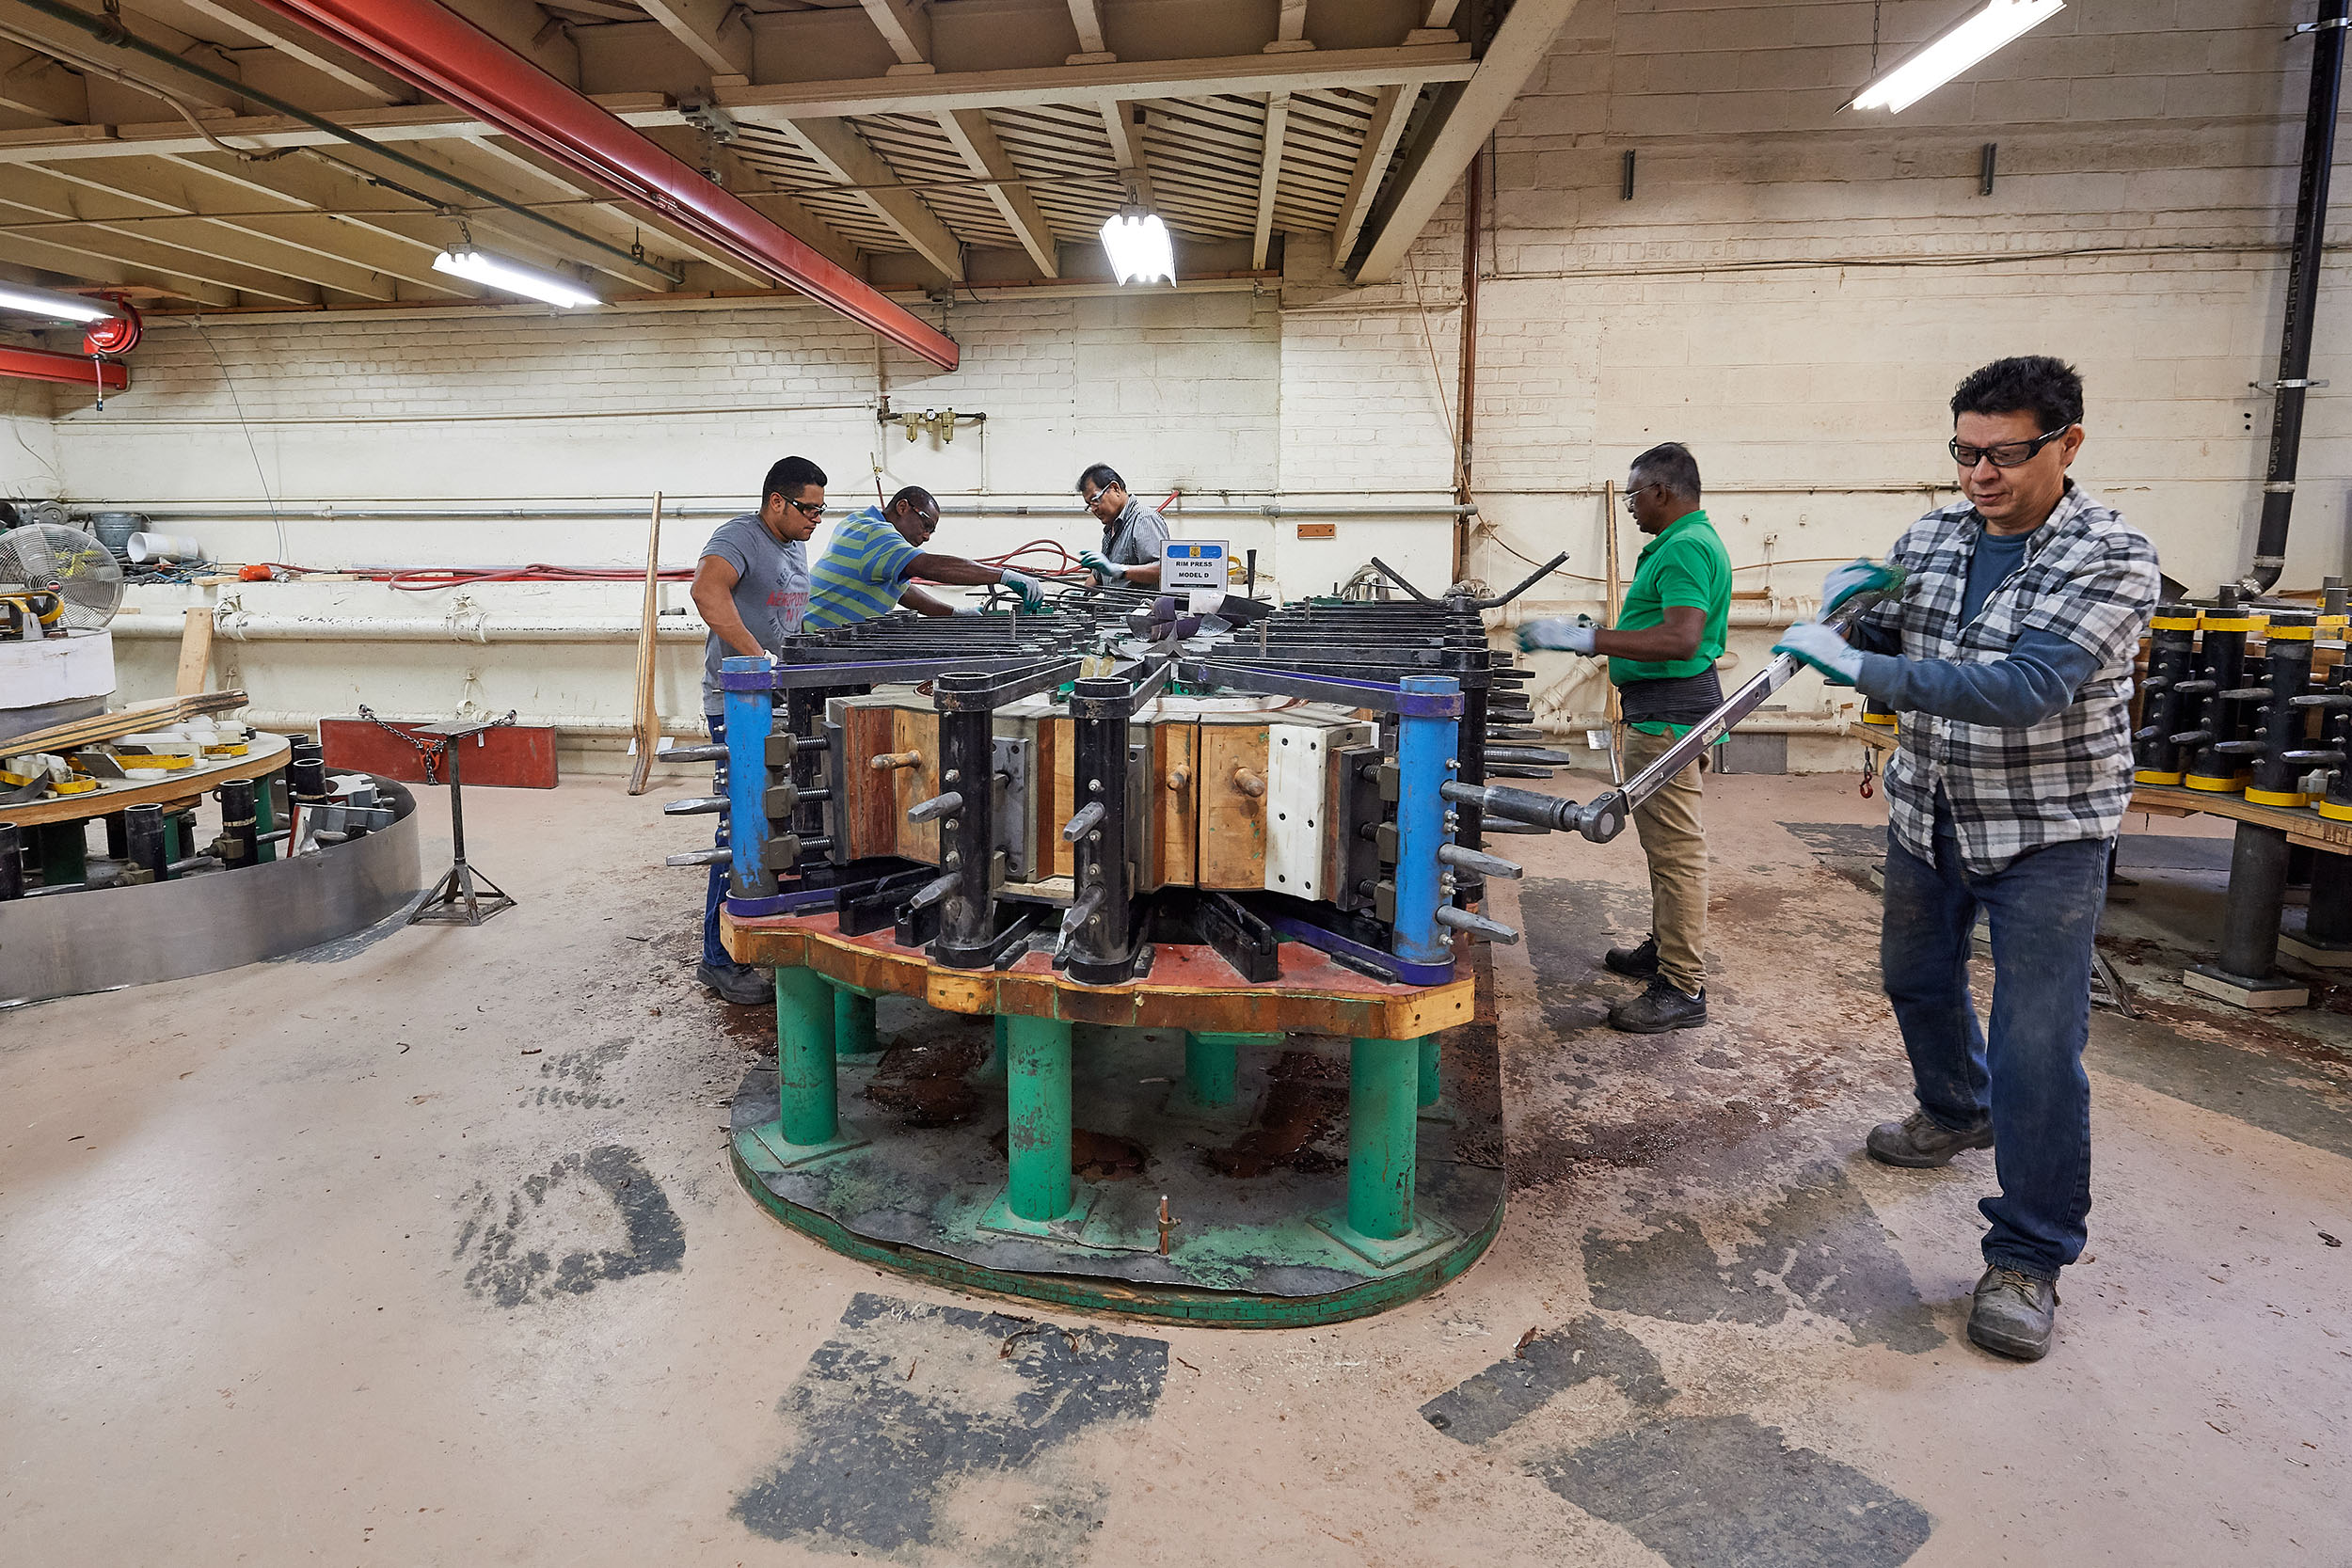 Craftsmen tighten a jig to form a piano rim at the Steinway & Sons factory